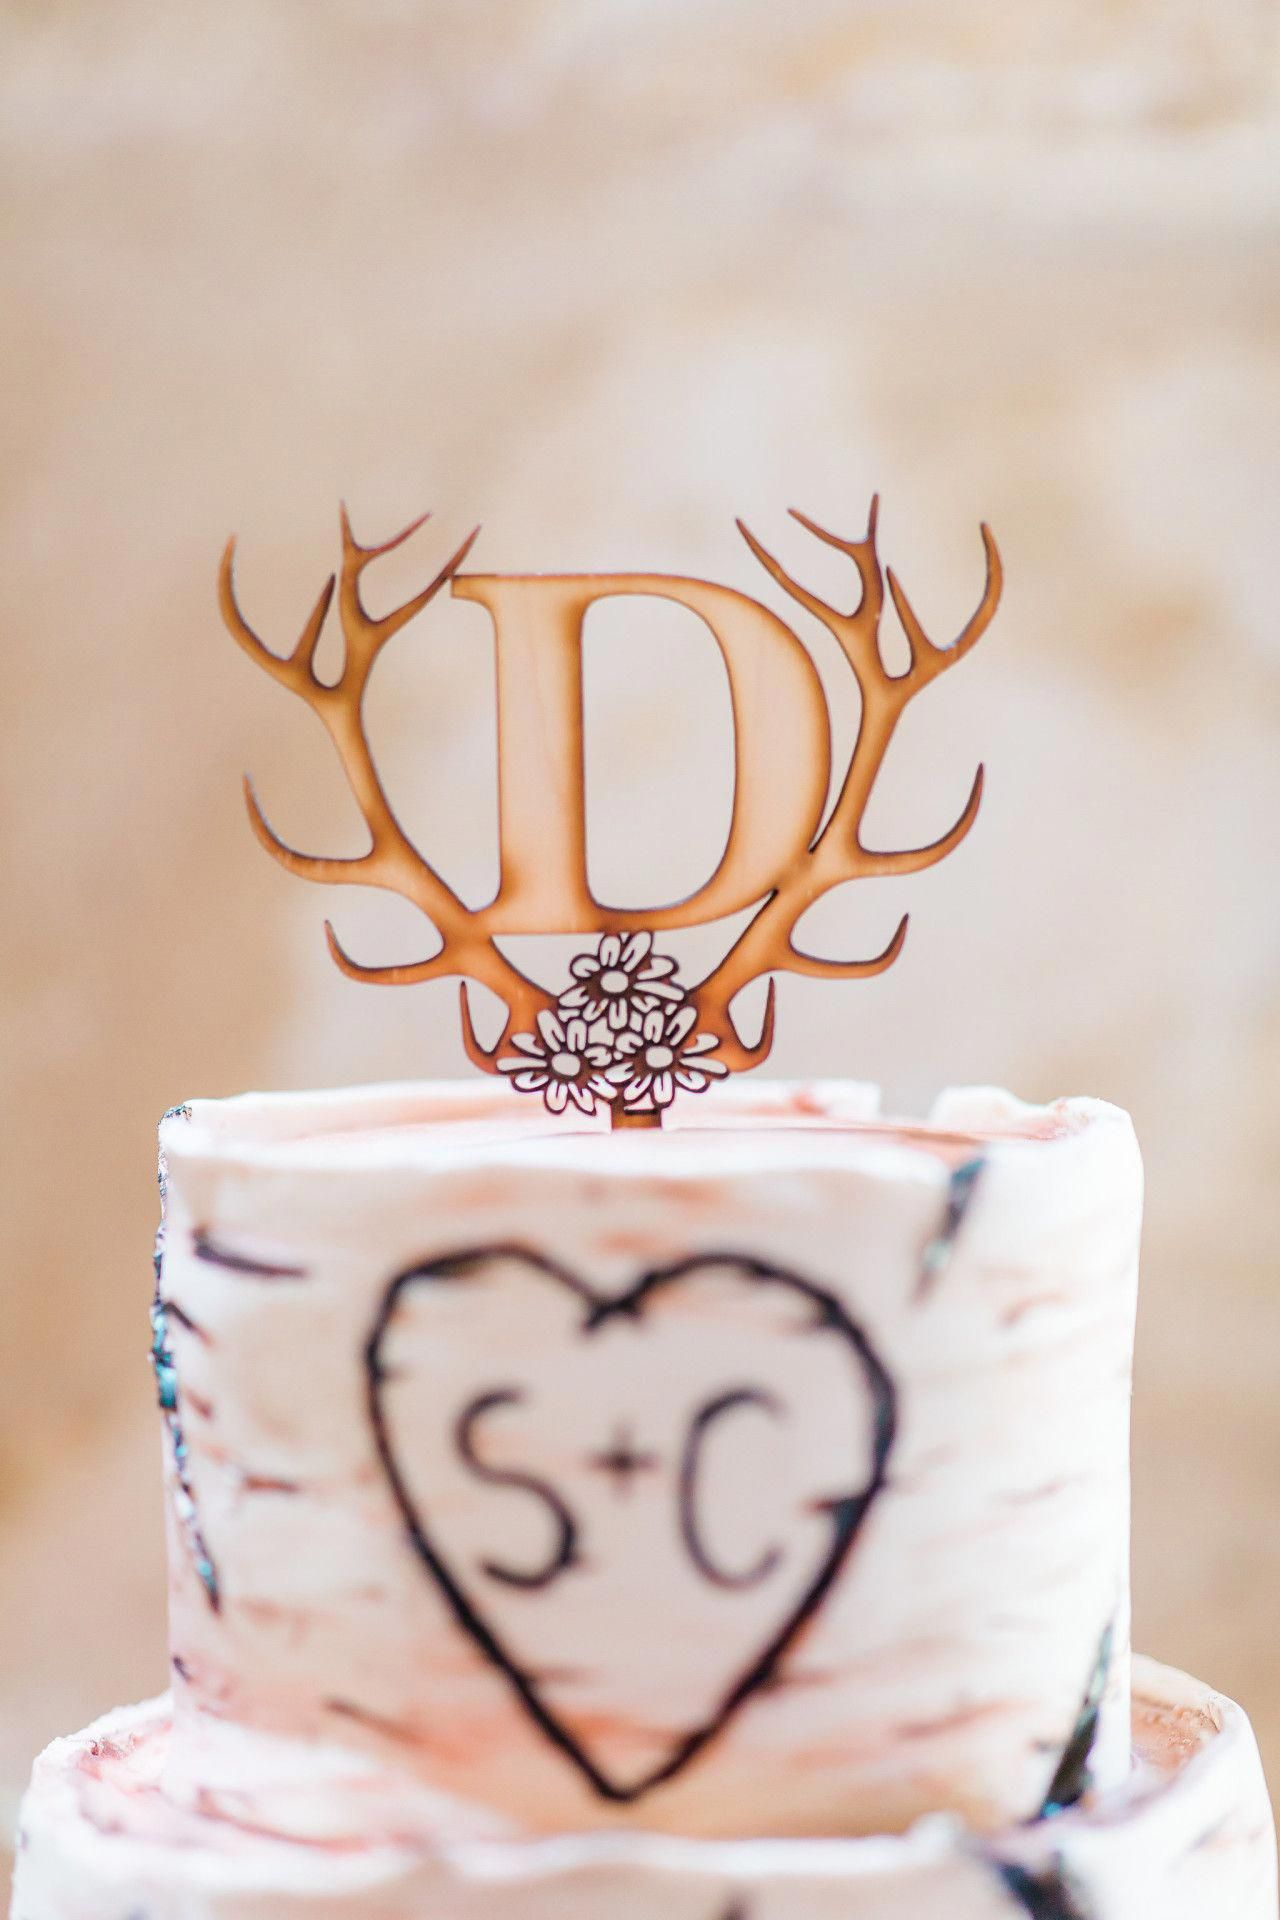 Availability of cake decorators might be restricted at the